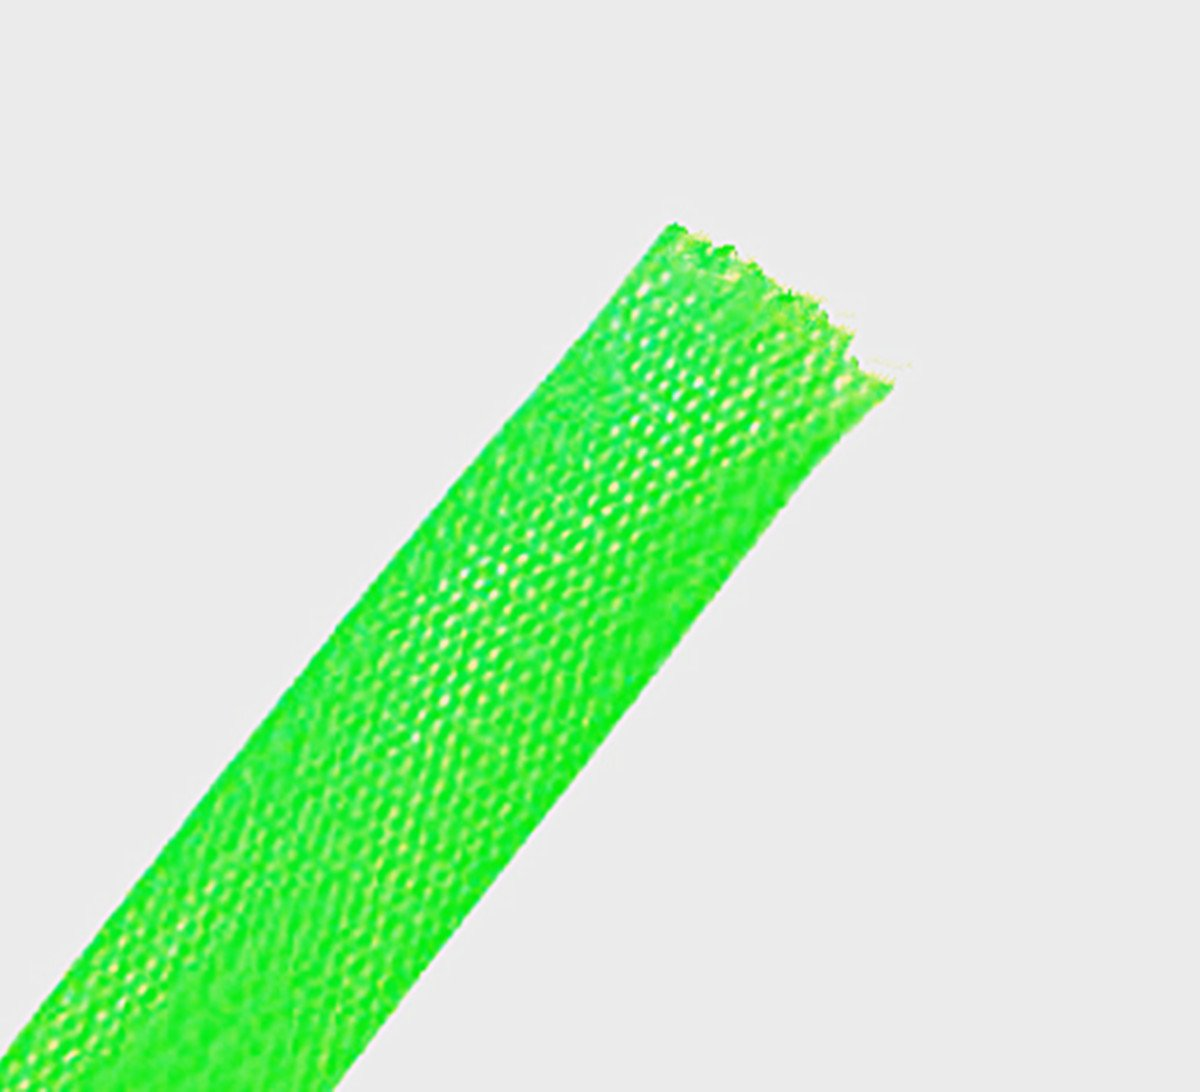 Wang-Data PET Green Braided Cable Sleeve 1/4 inch X 100ft (1/4'' X 100')